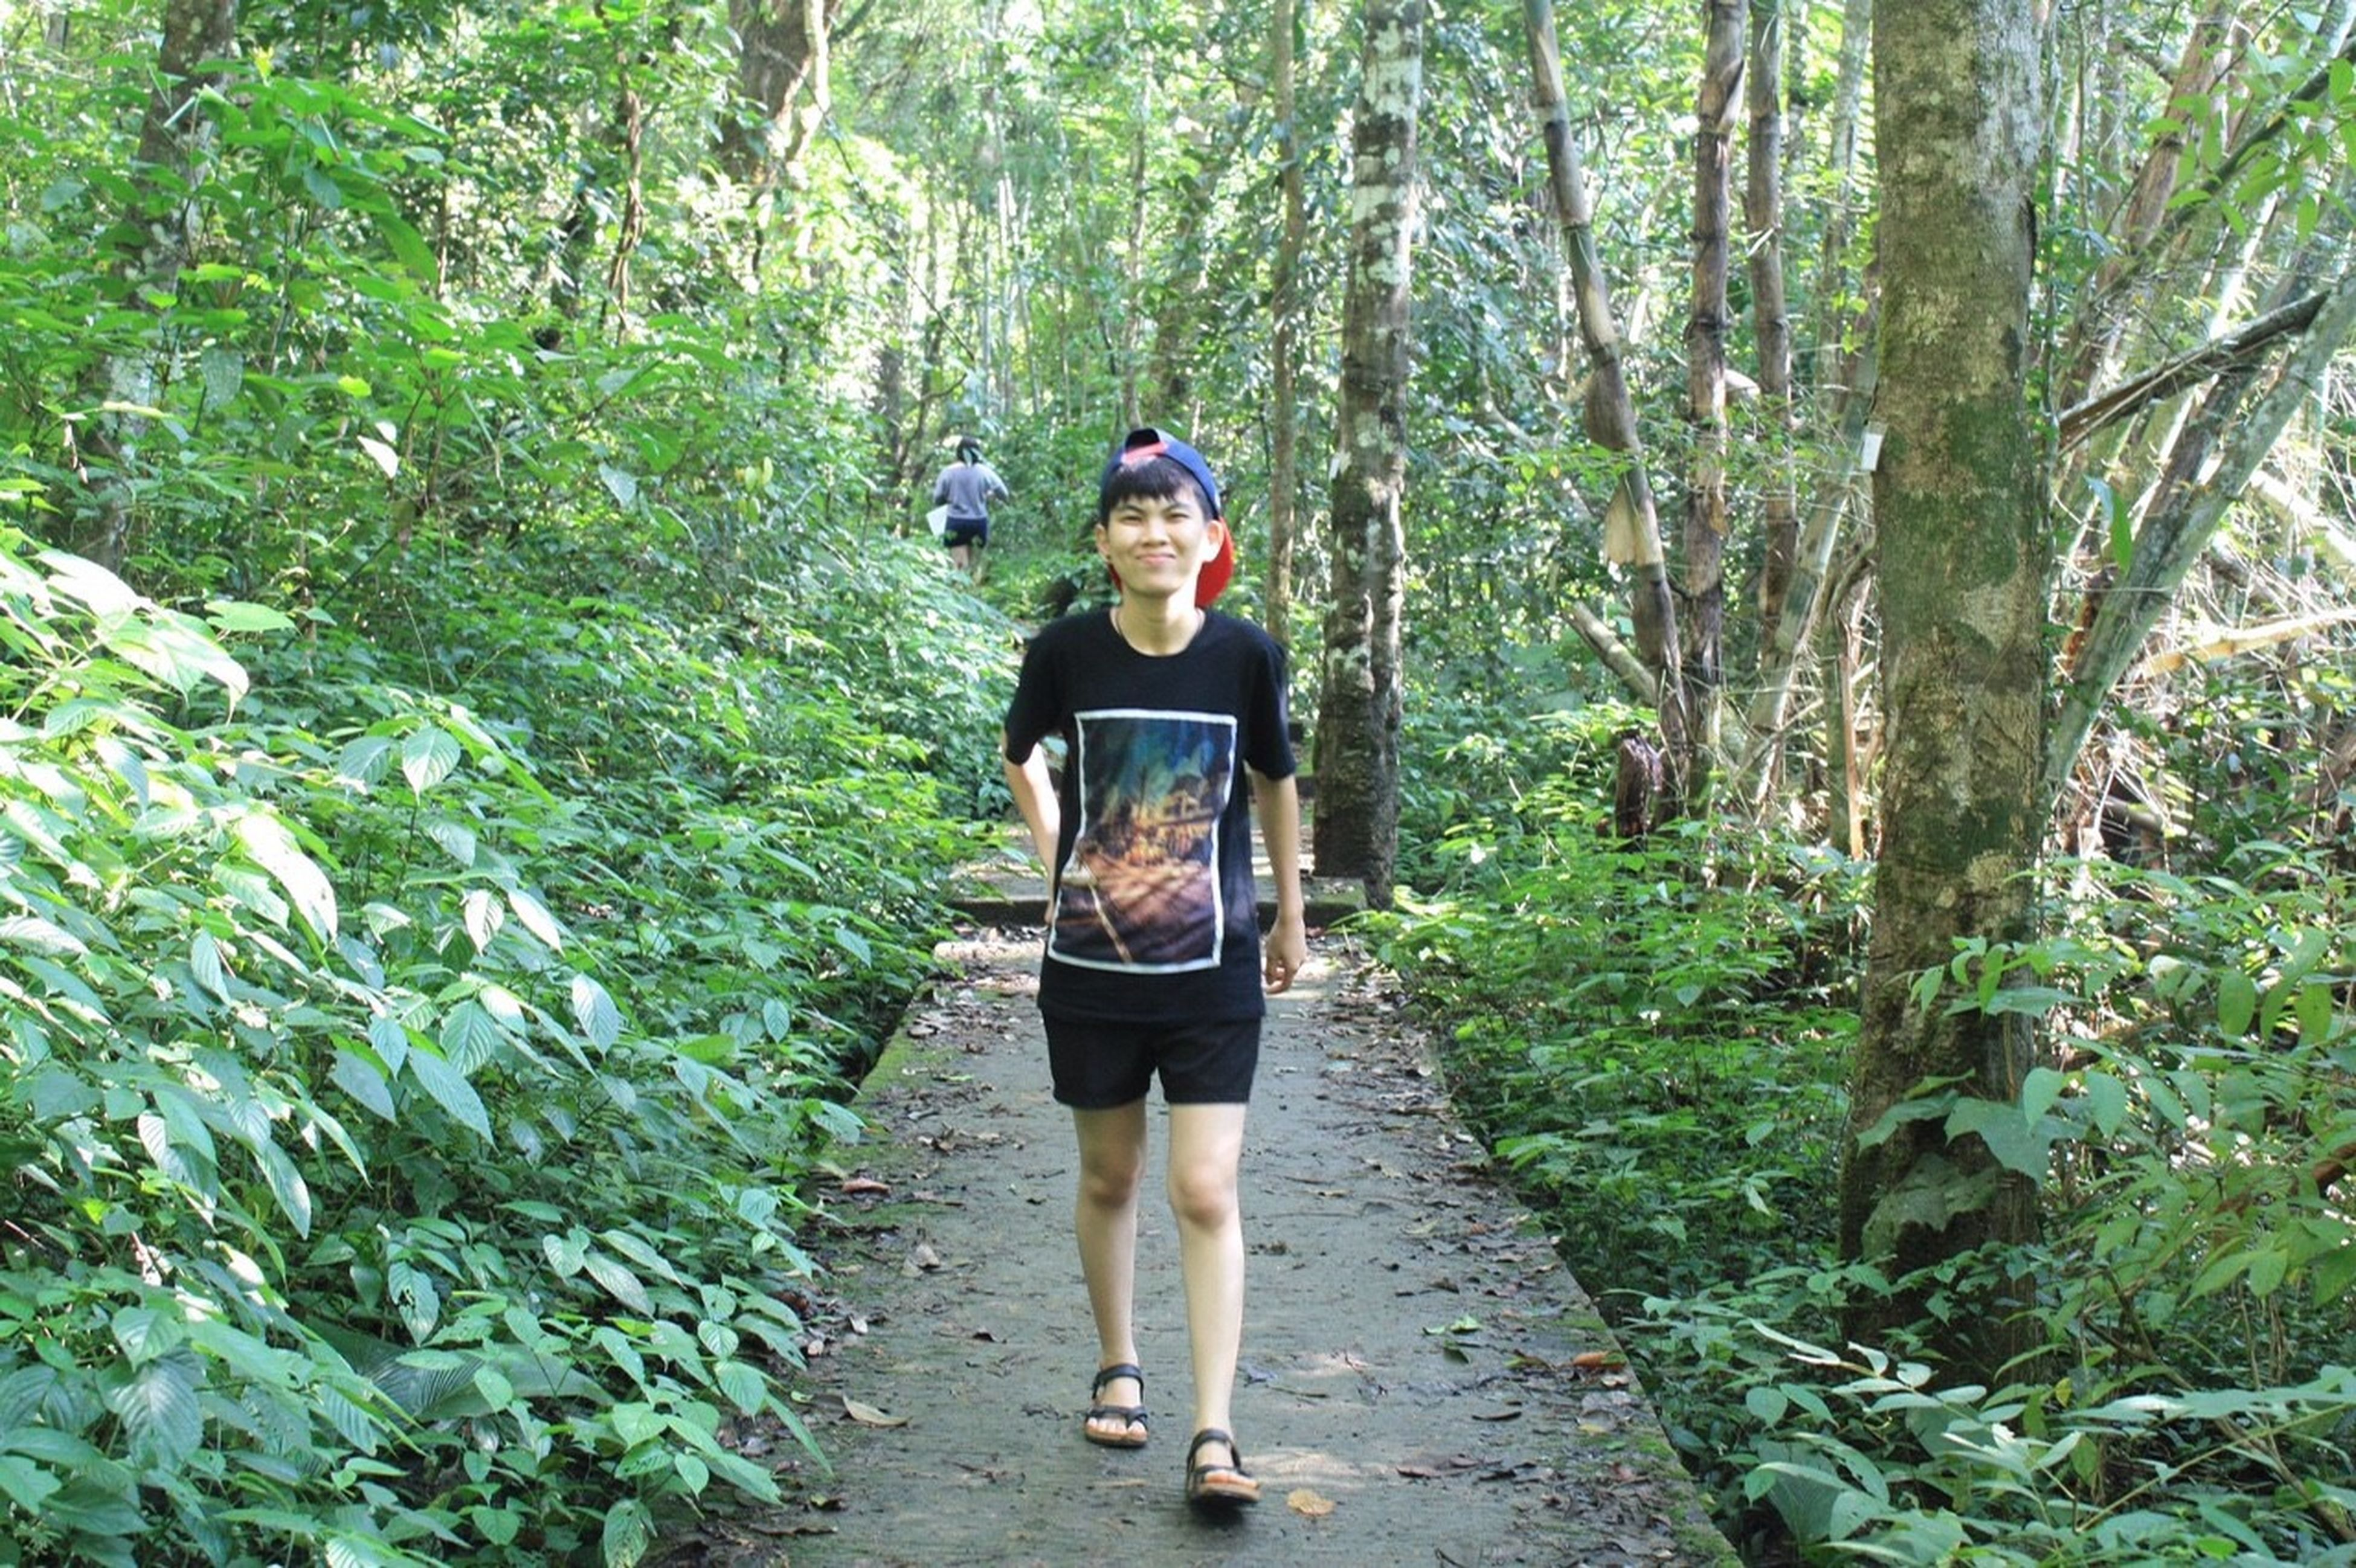 tree, forest, full length, rear view, lifestyles, leisure activity, walking, casual clothing, growth, nature, standing, tranquility, green color, tranquil scene, men, beauty in nature, the way forward, person